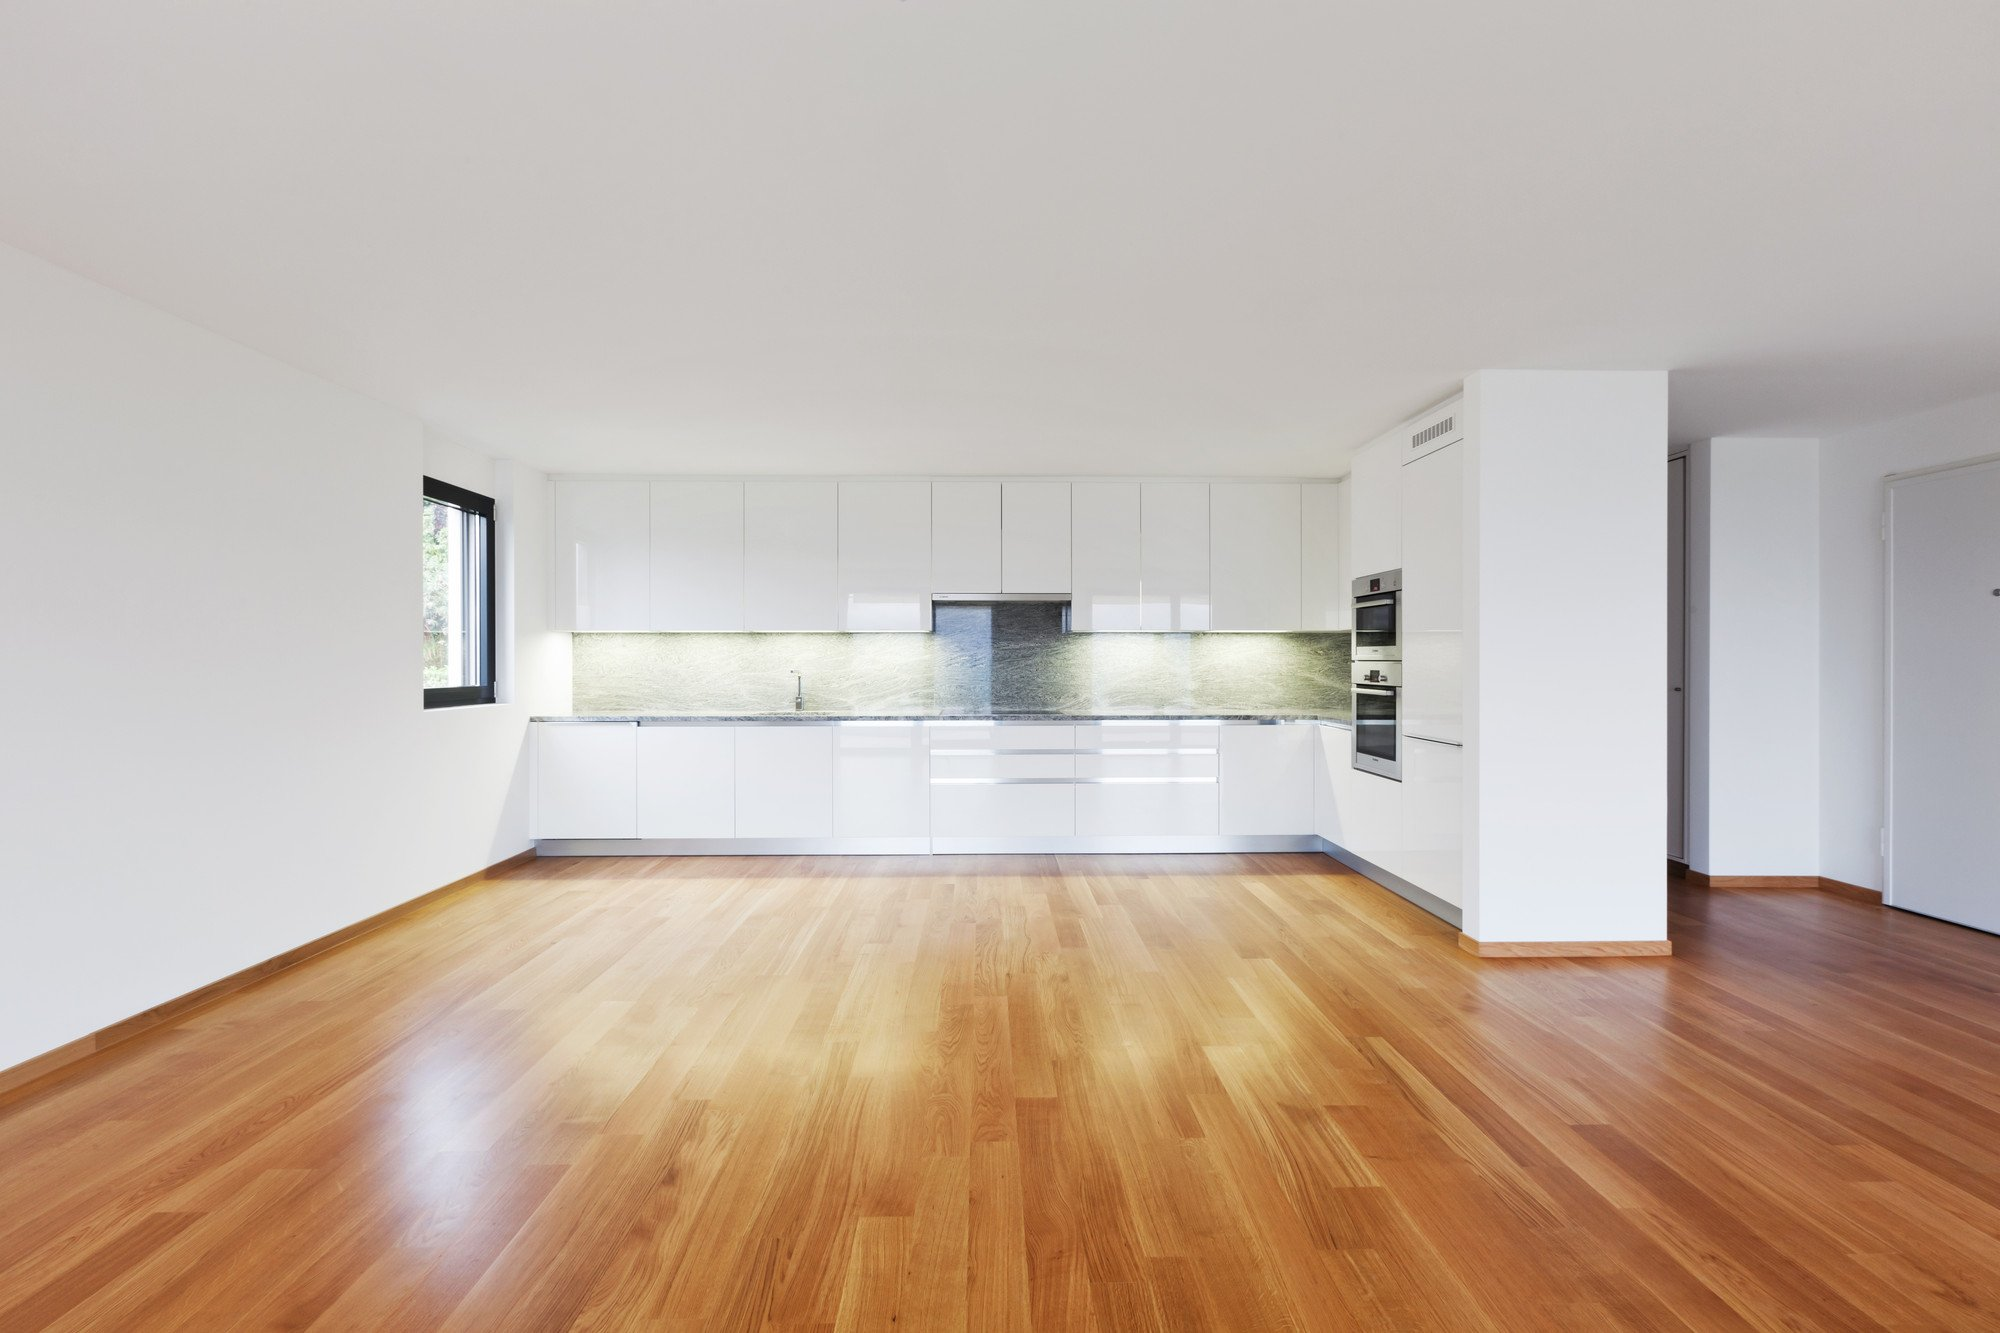 Wood floors from wooden floor company in glasgow for Hardwood flooring company